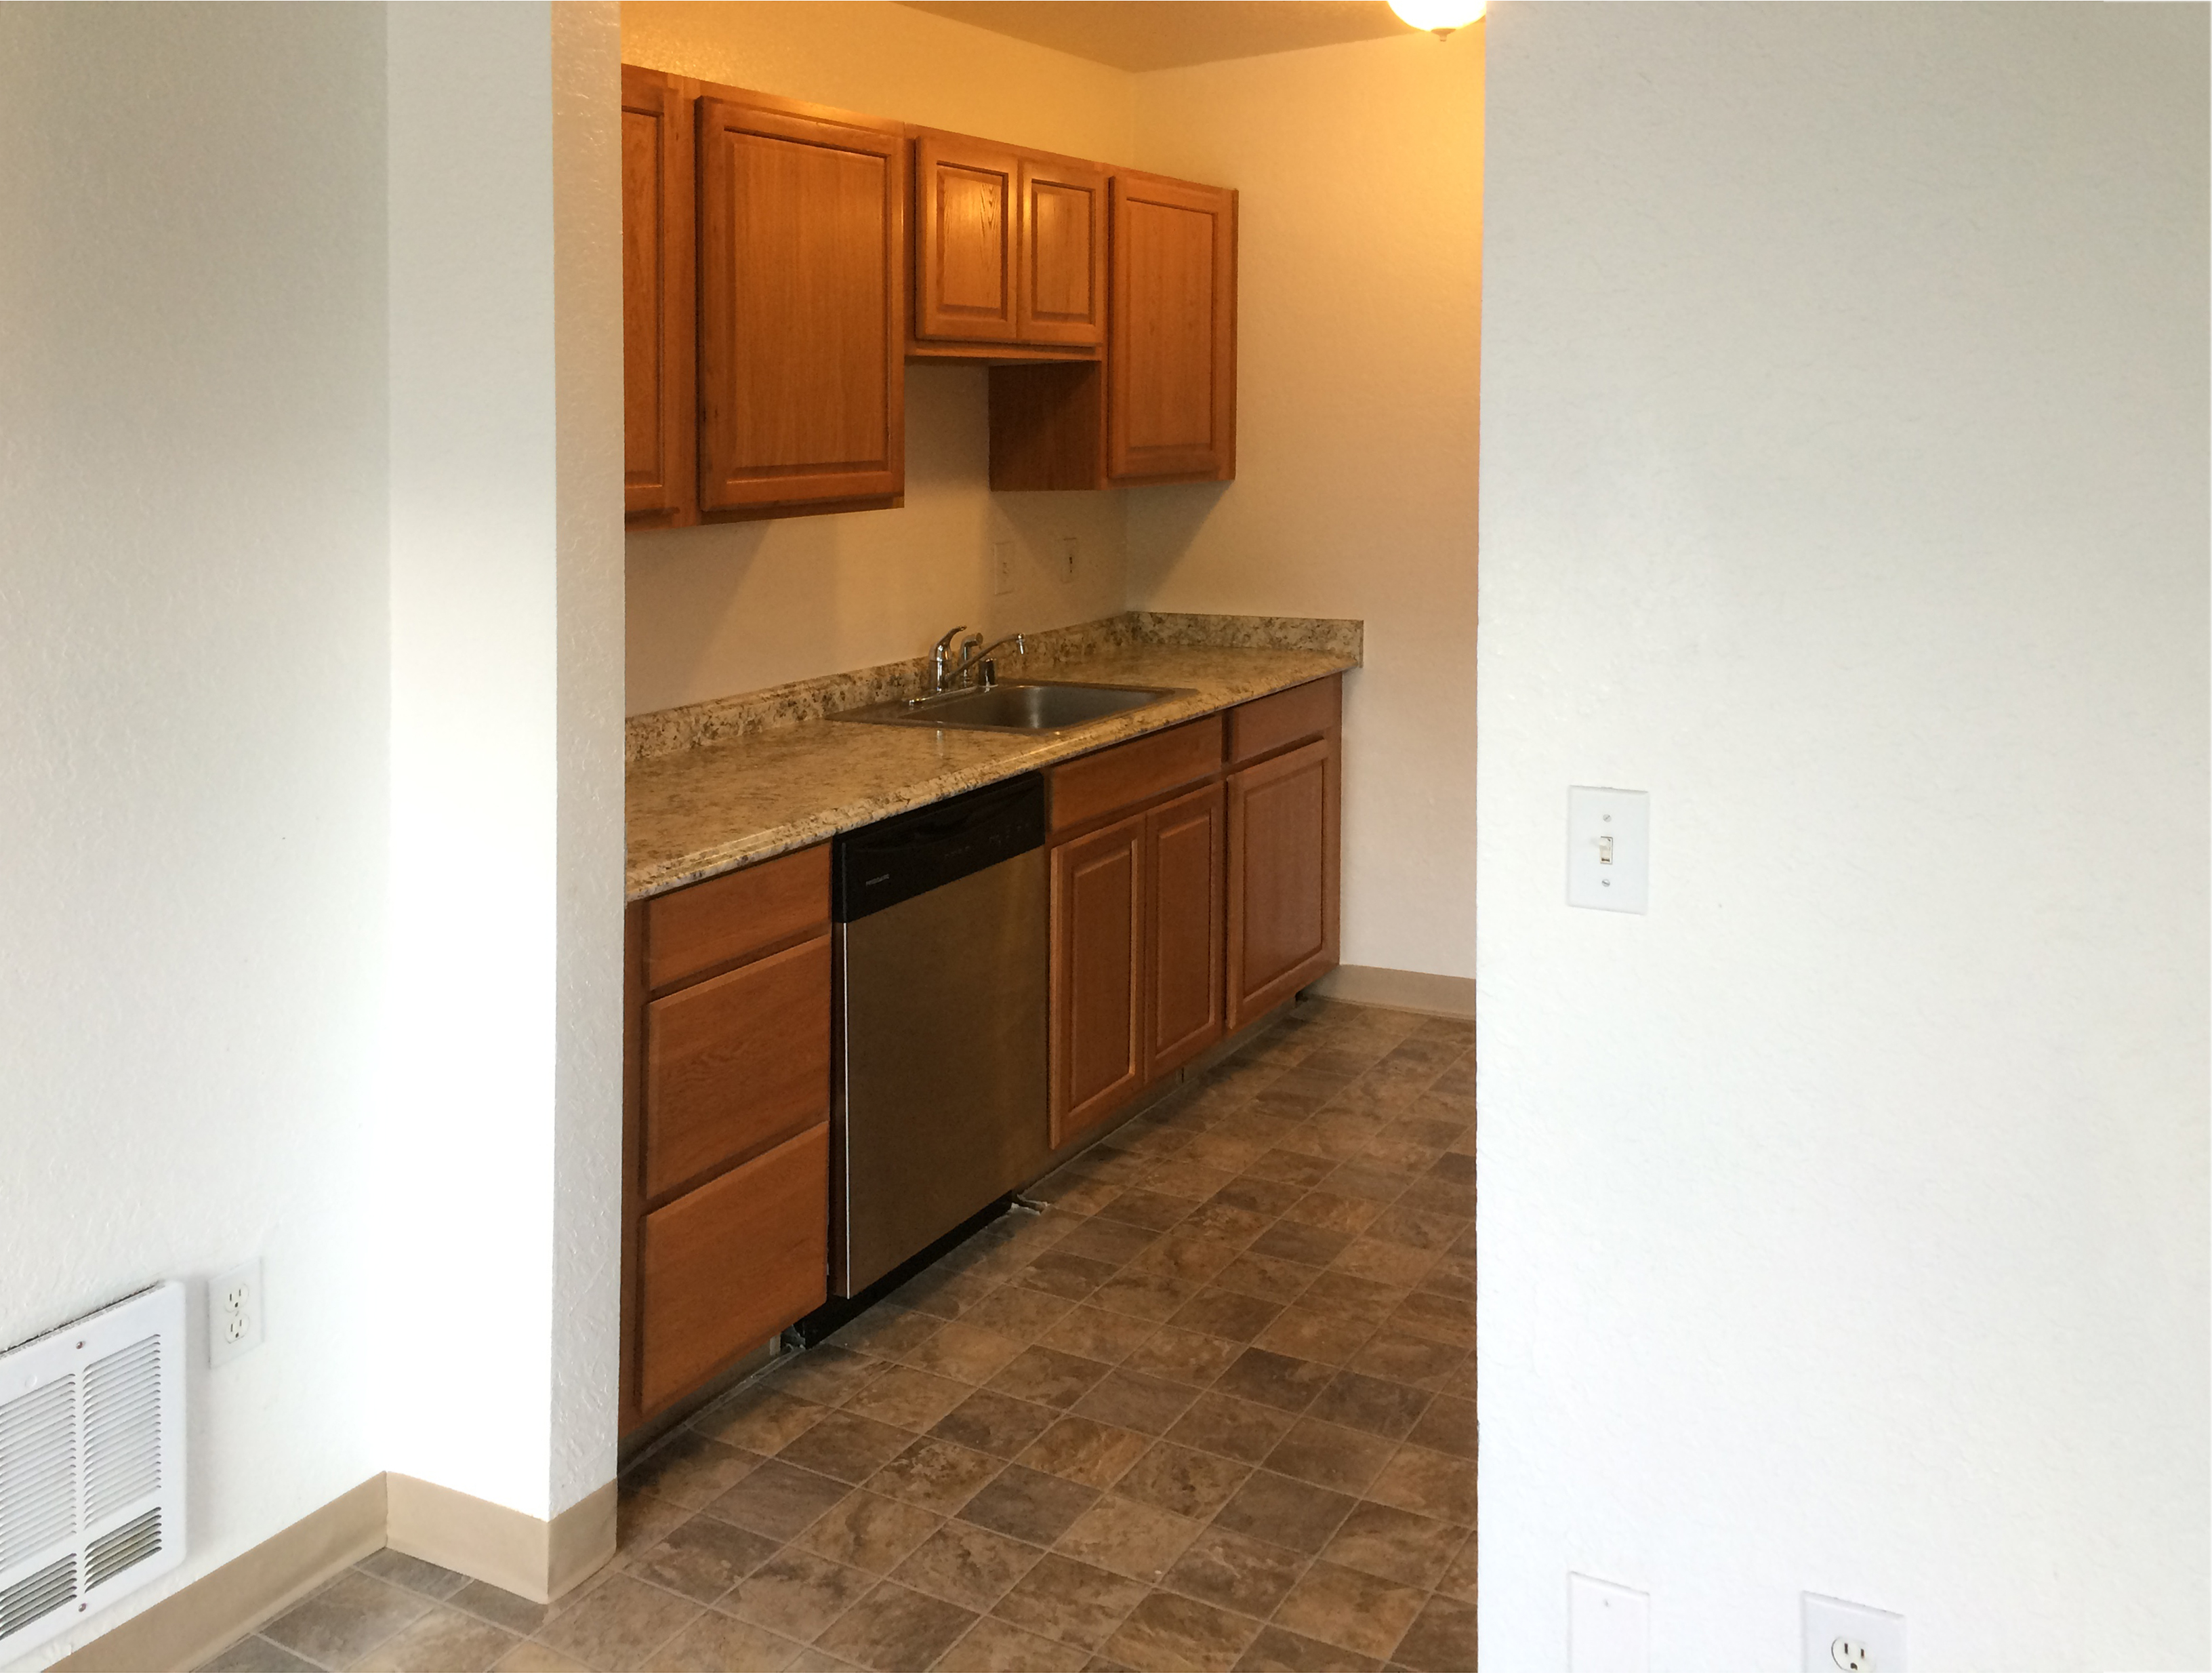 Kitchen complete with range, refrigerator, dishwasher, and garbage disposal in the sink.